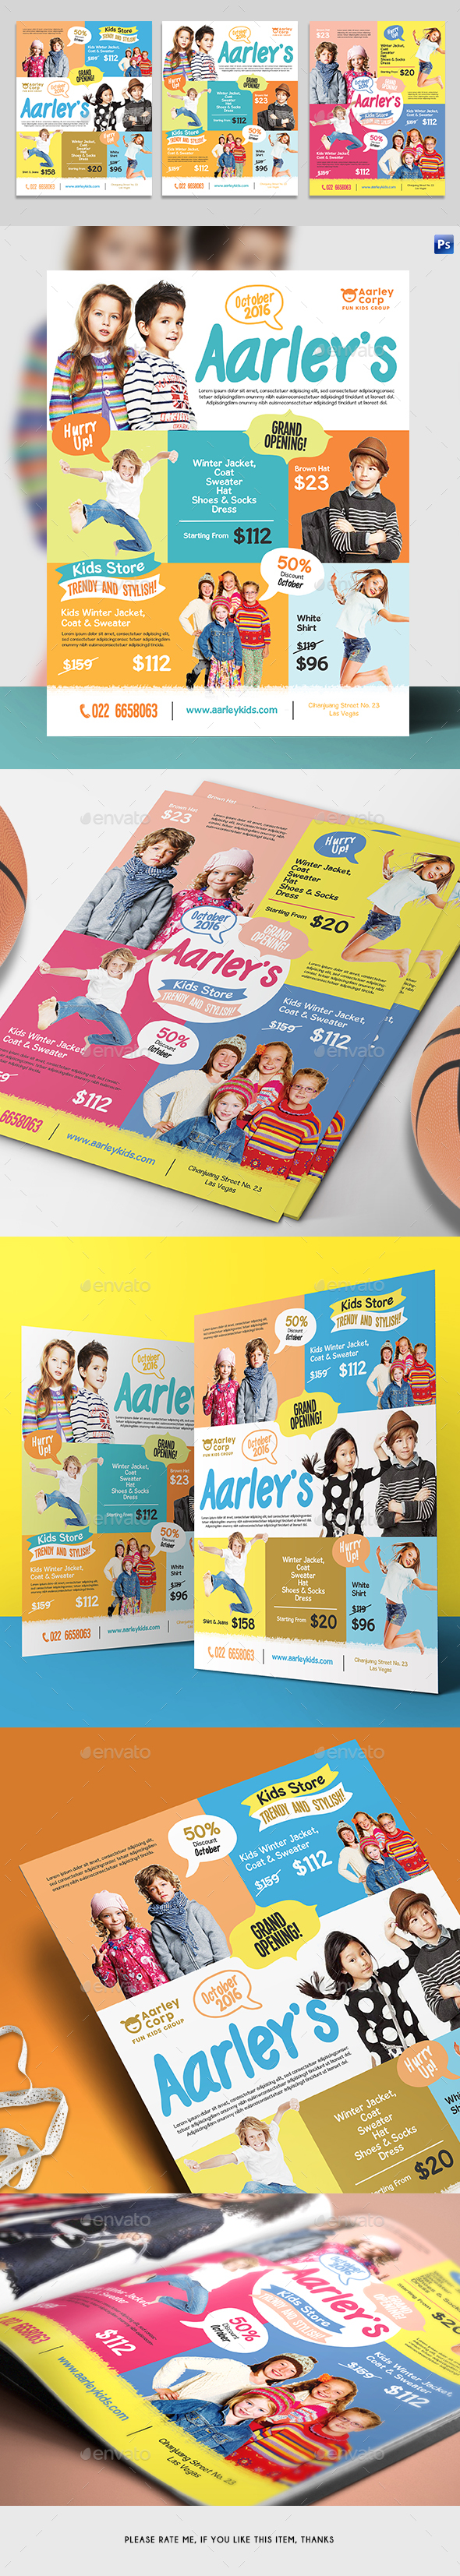 Kids Store Flyer / Magazine Ad - Corporate Flyers